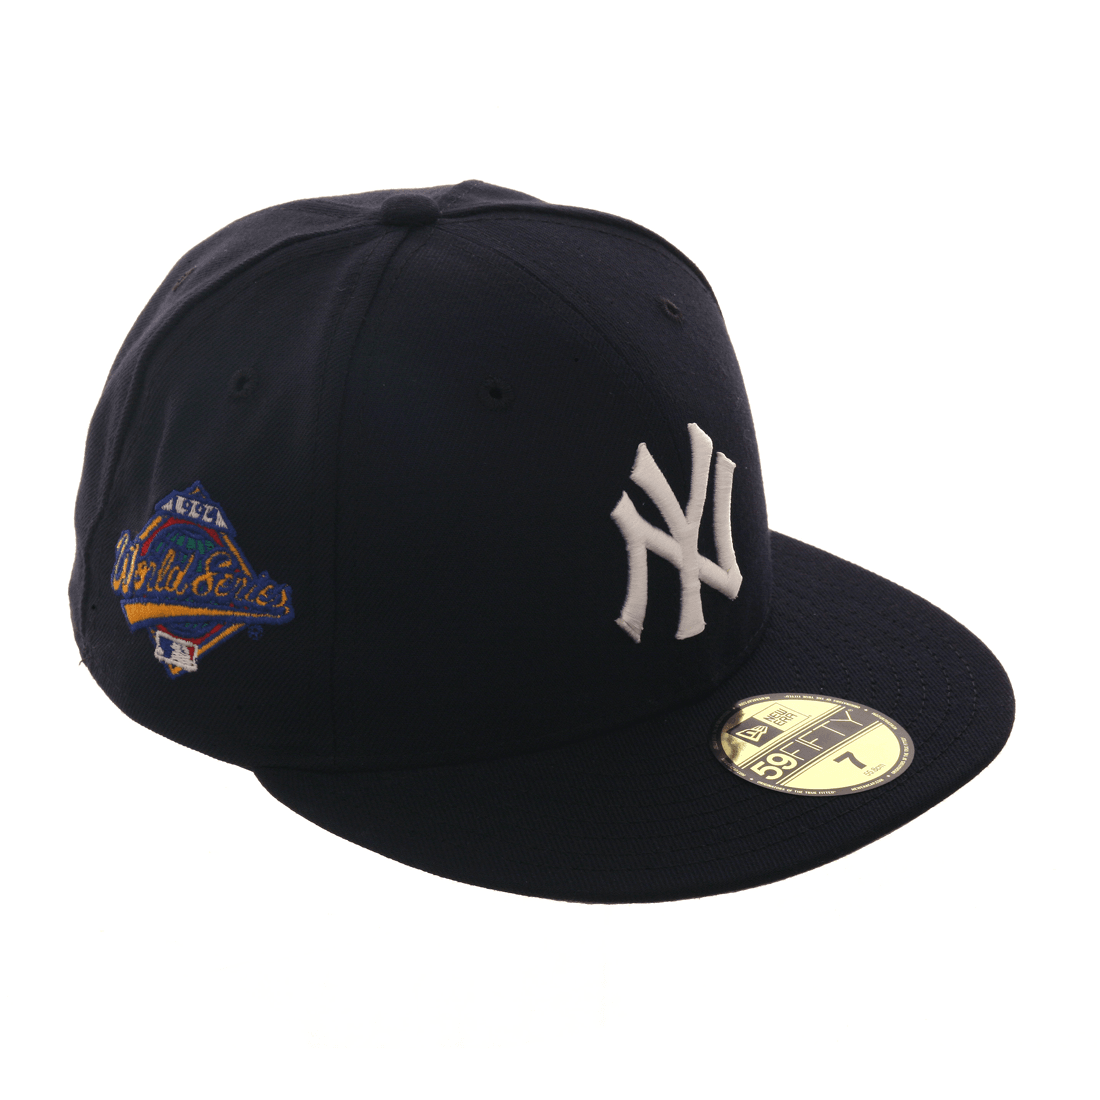 c2d26308967 Exclusive New Era 59Fifty New York Yankees